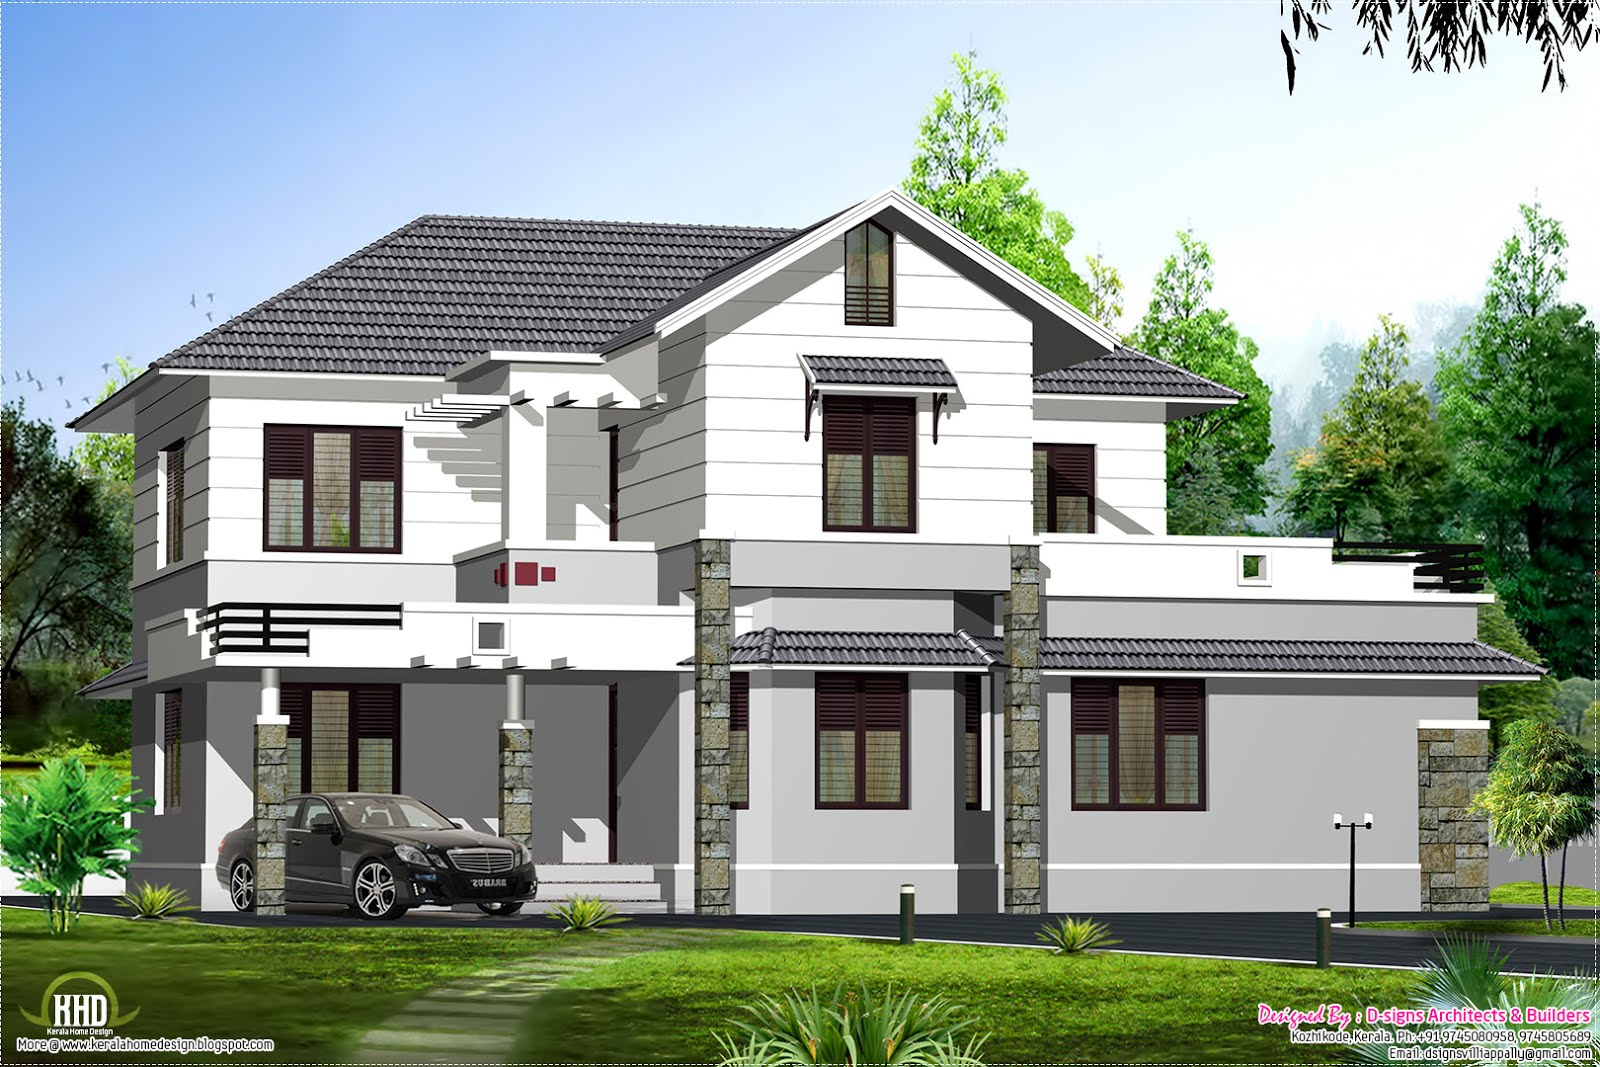 House Design Styles 1600 x 1067